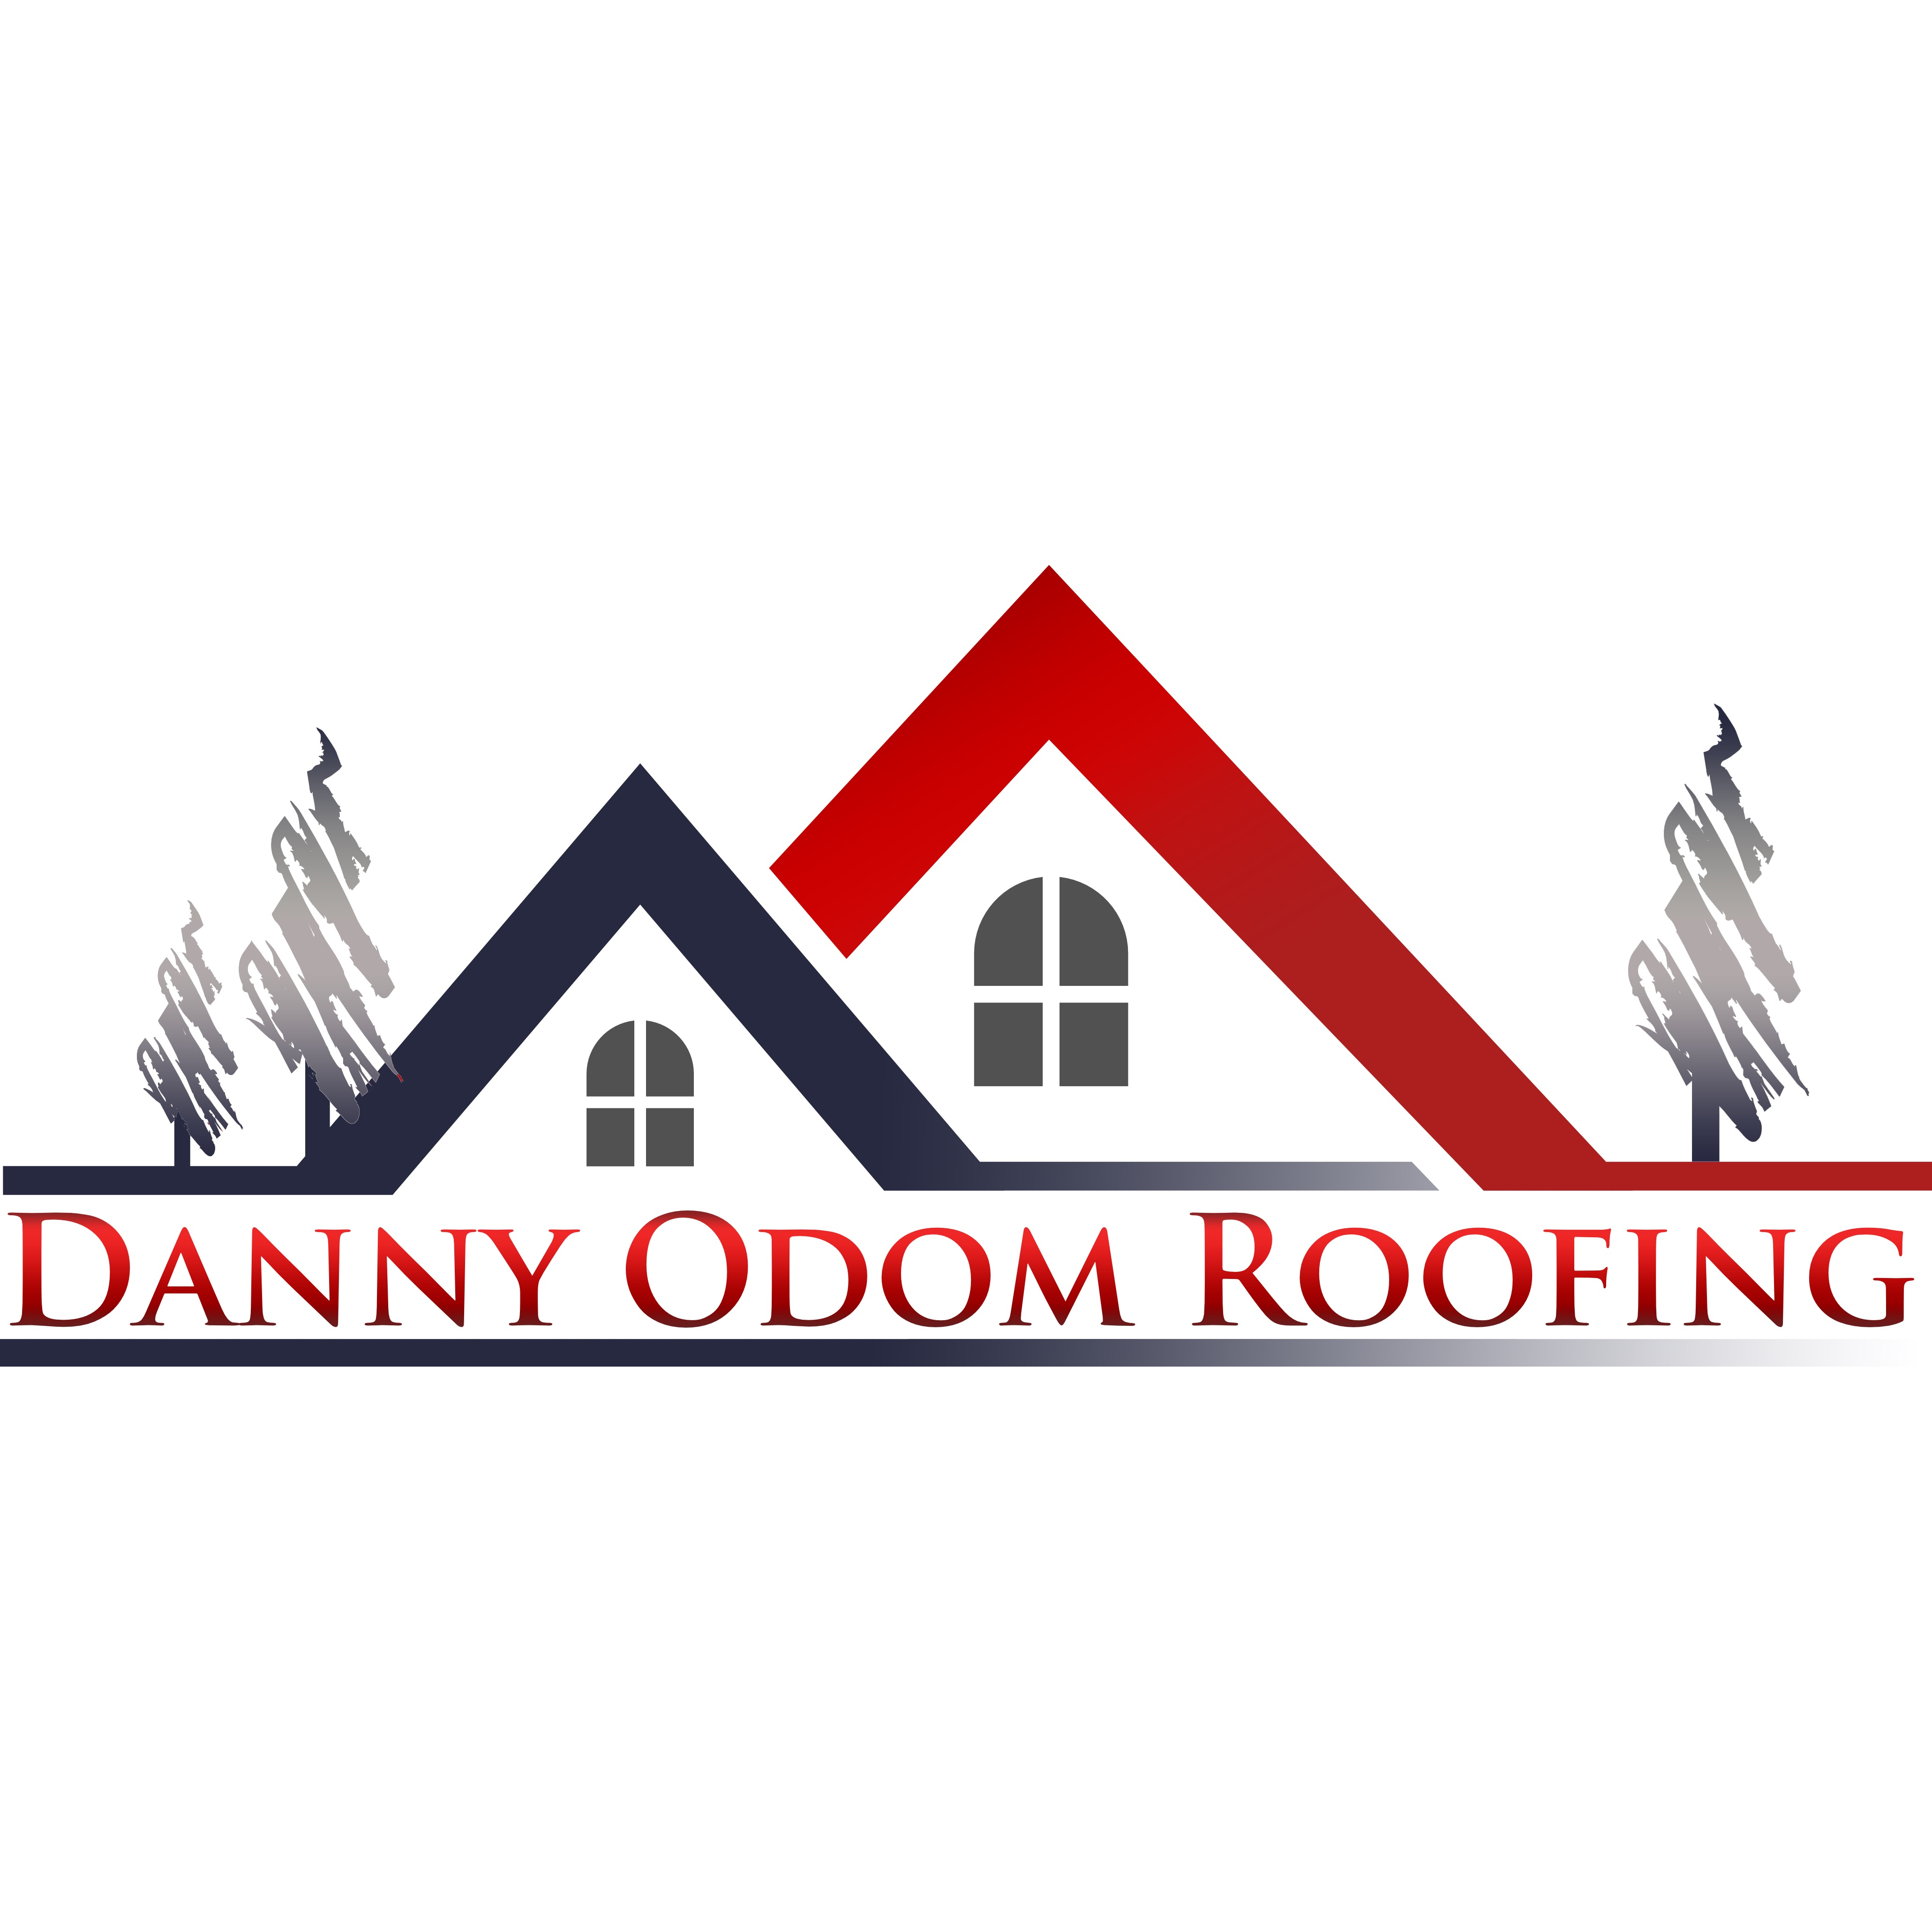 Danny Odom Roofing